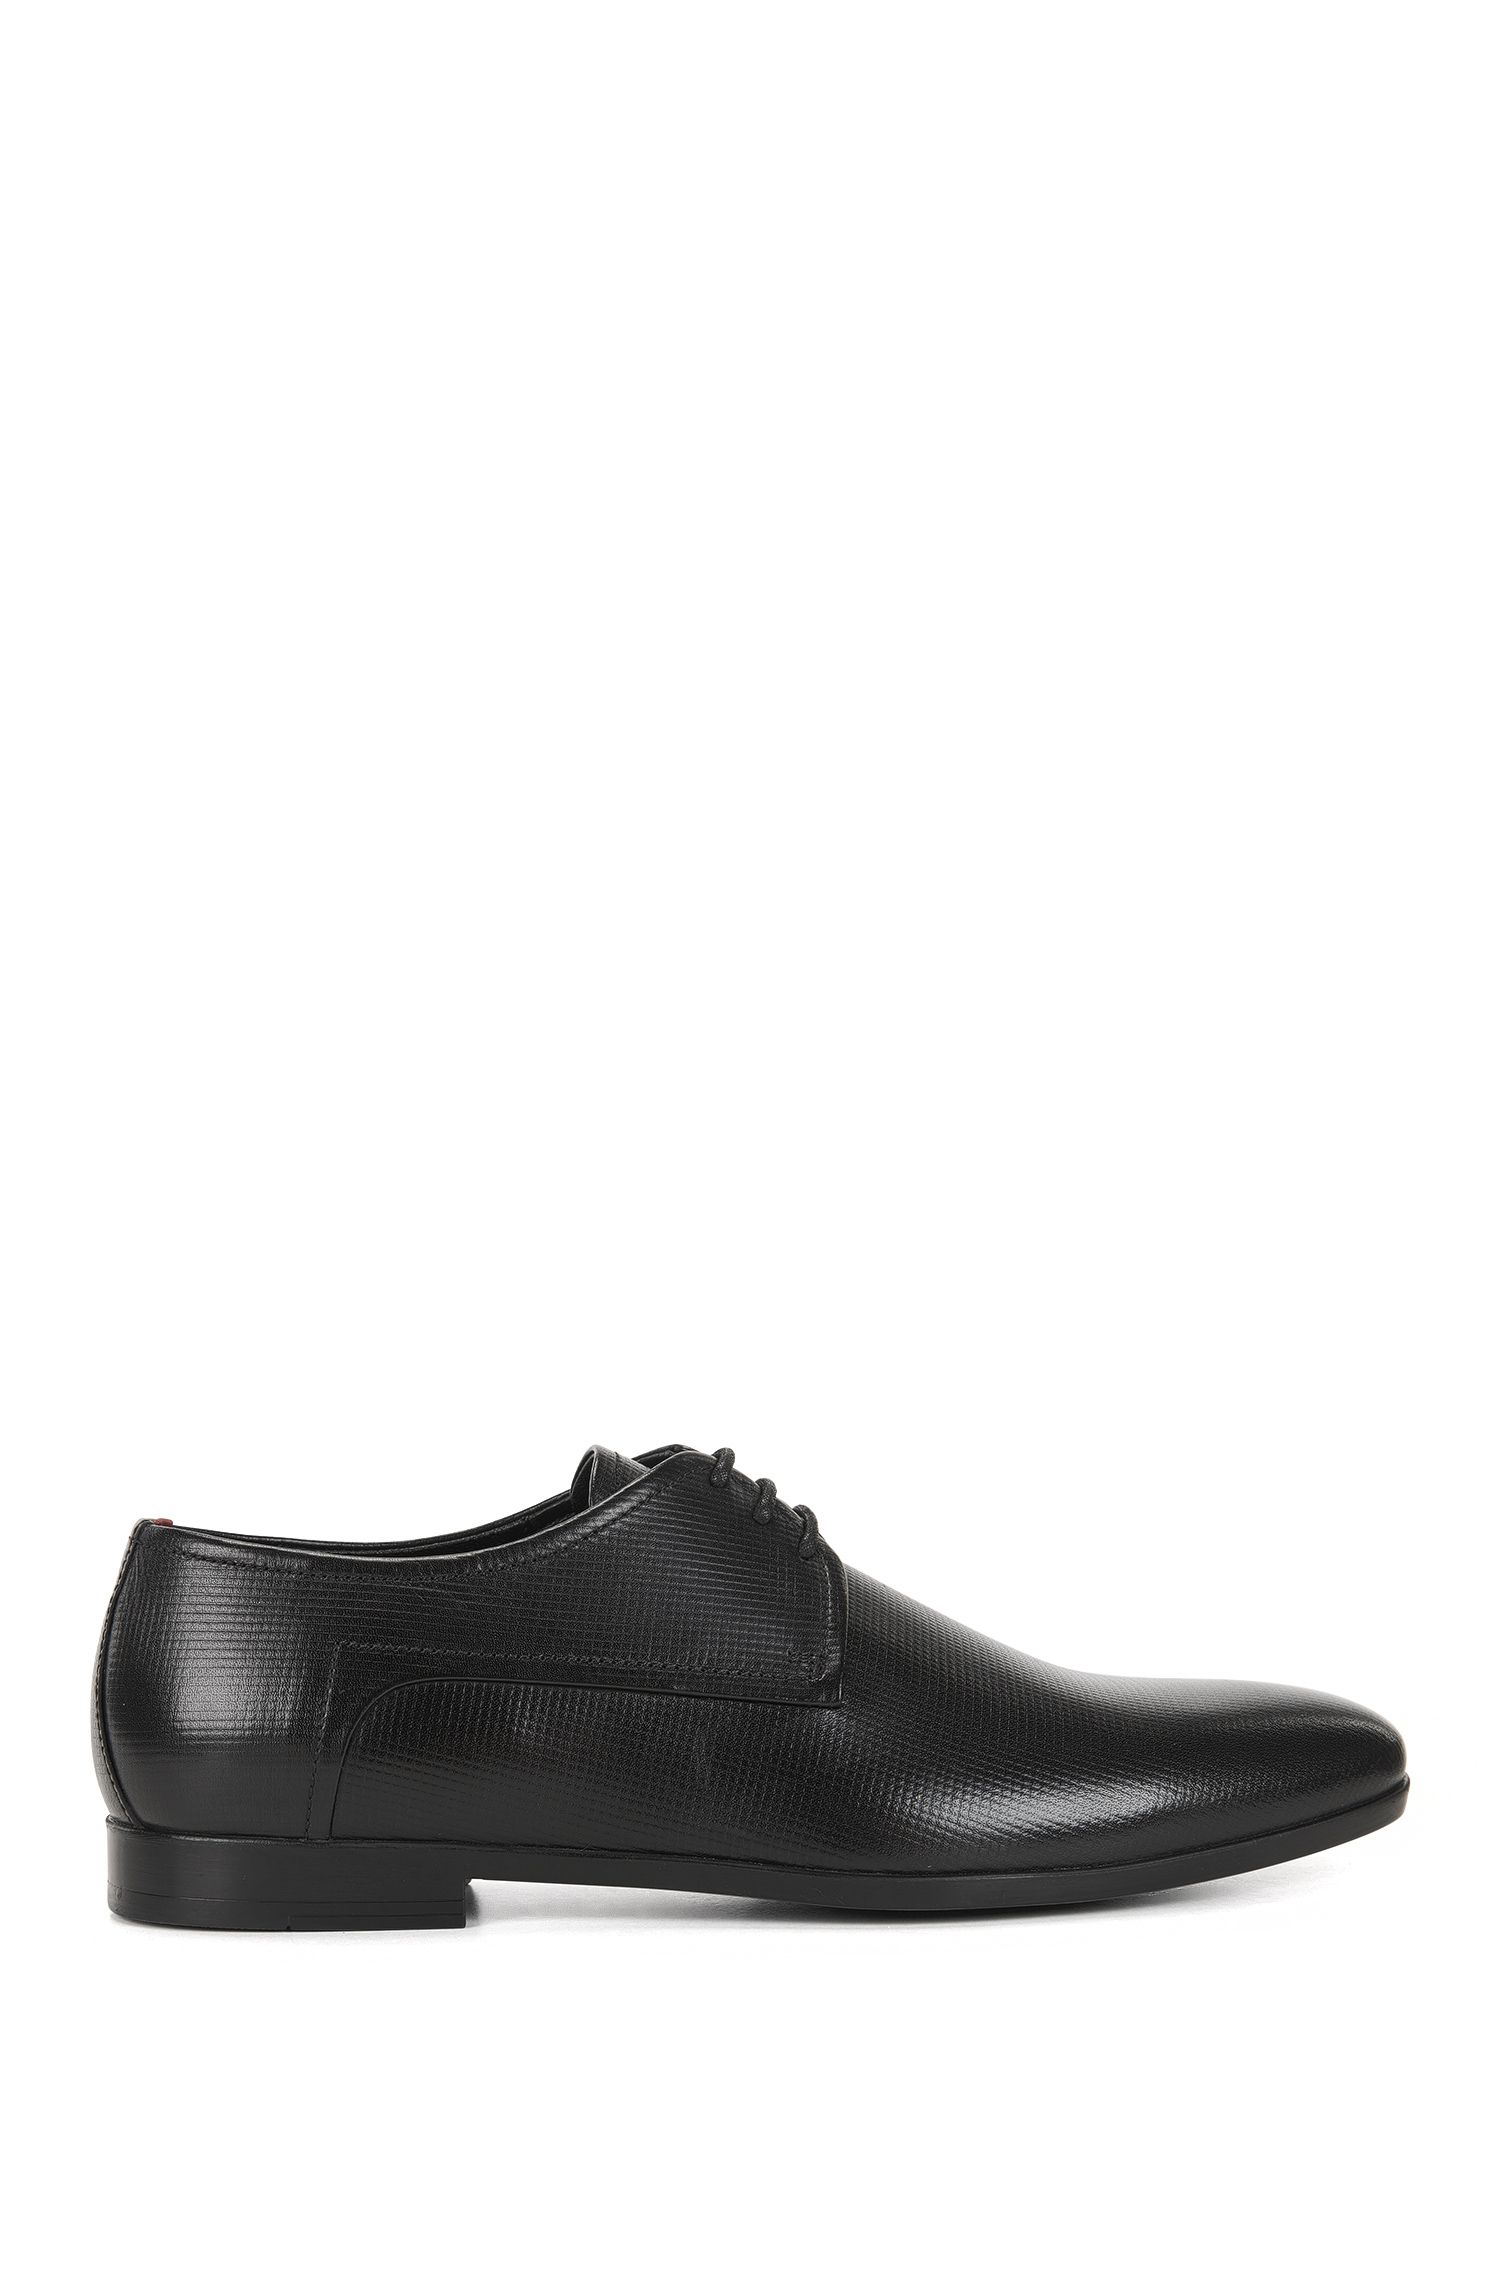 Derby shoes in embossed leather